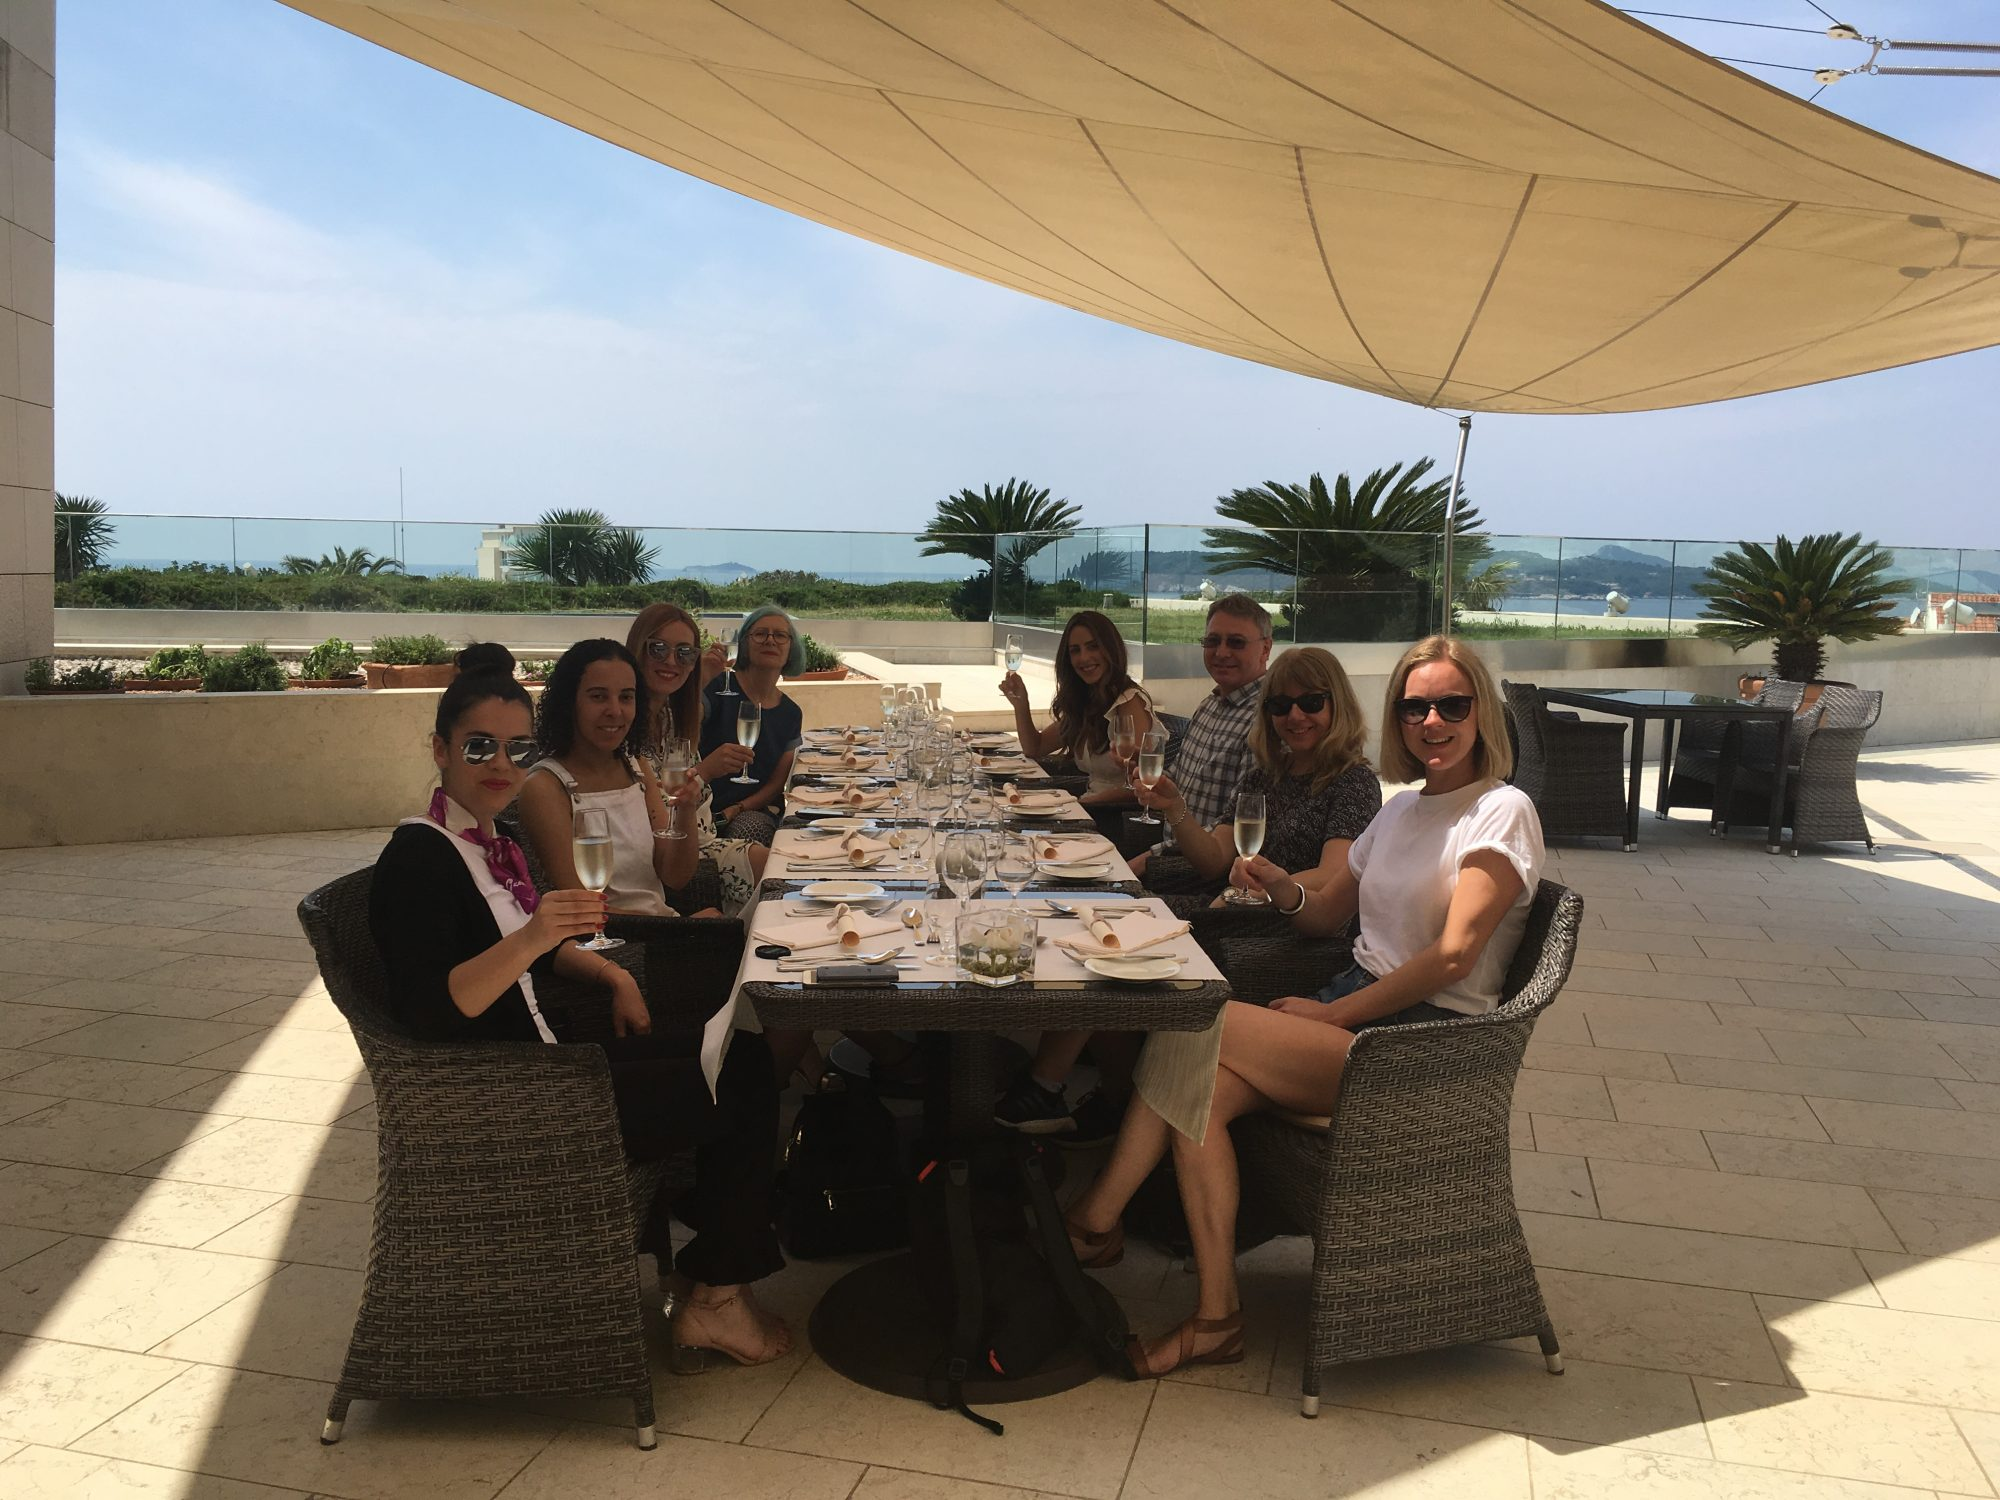 Group of people enjoy lunch on a sunny terrace shaded by a sunsail